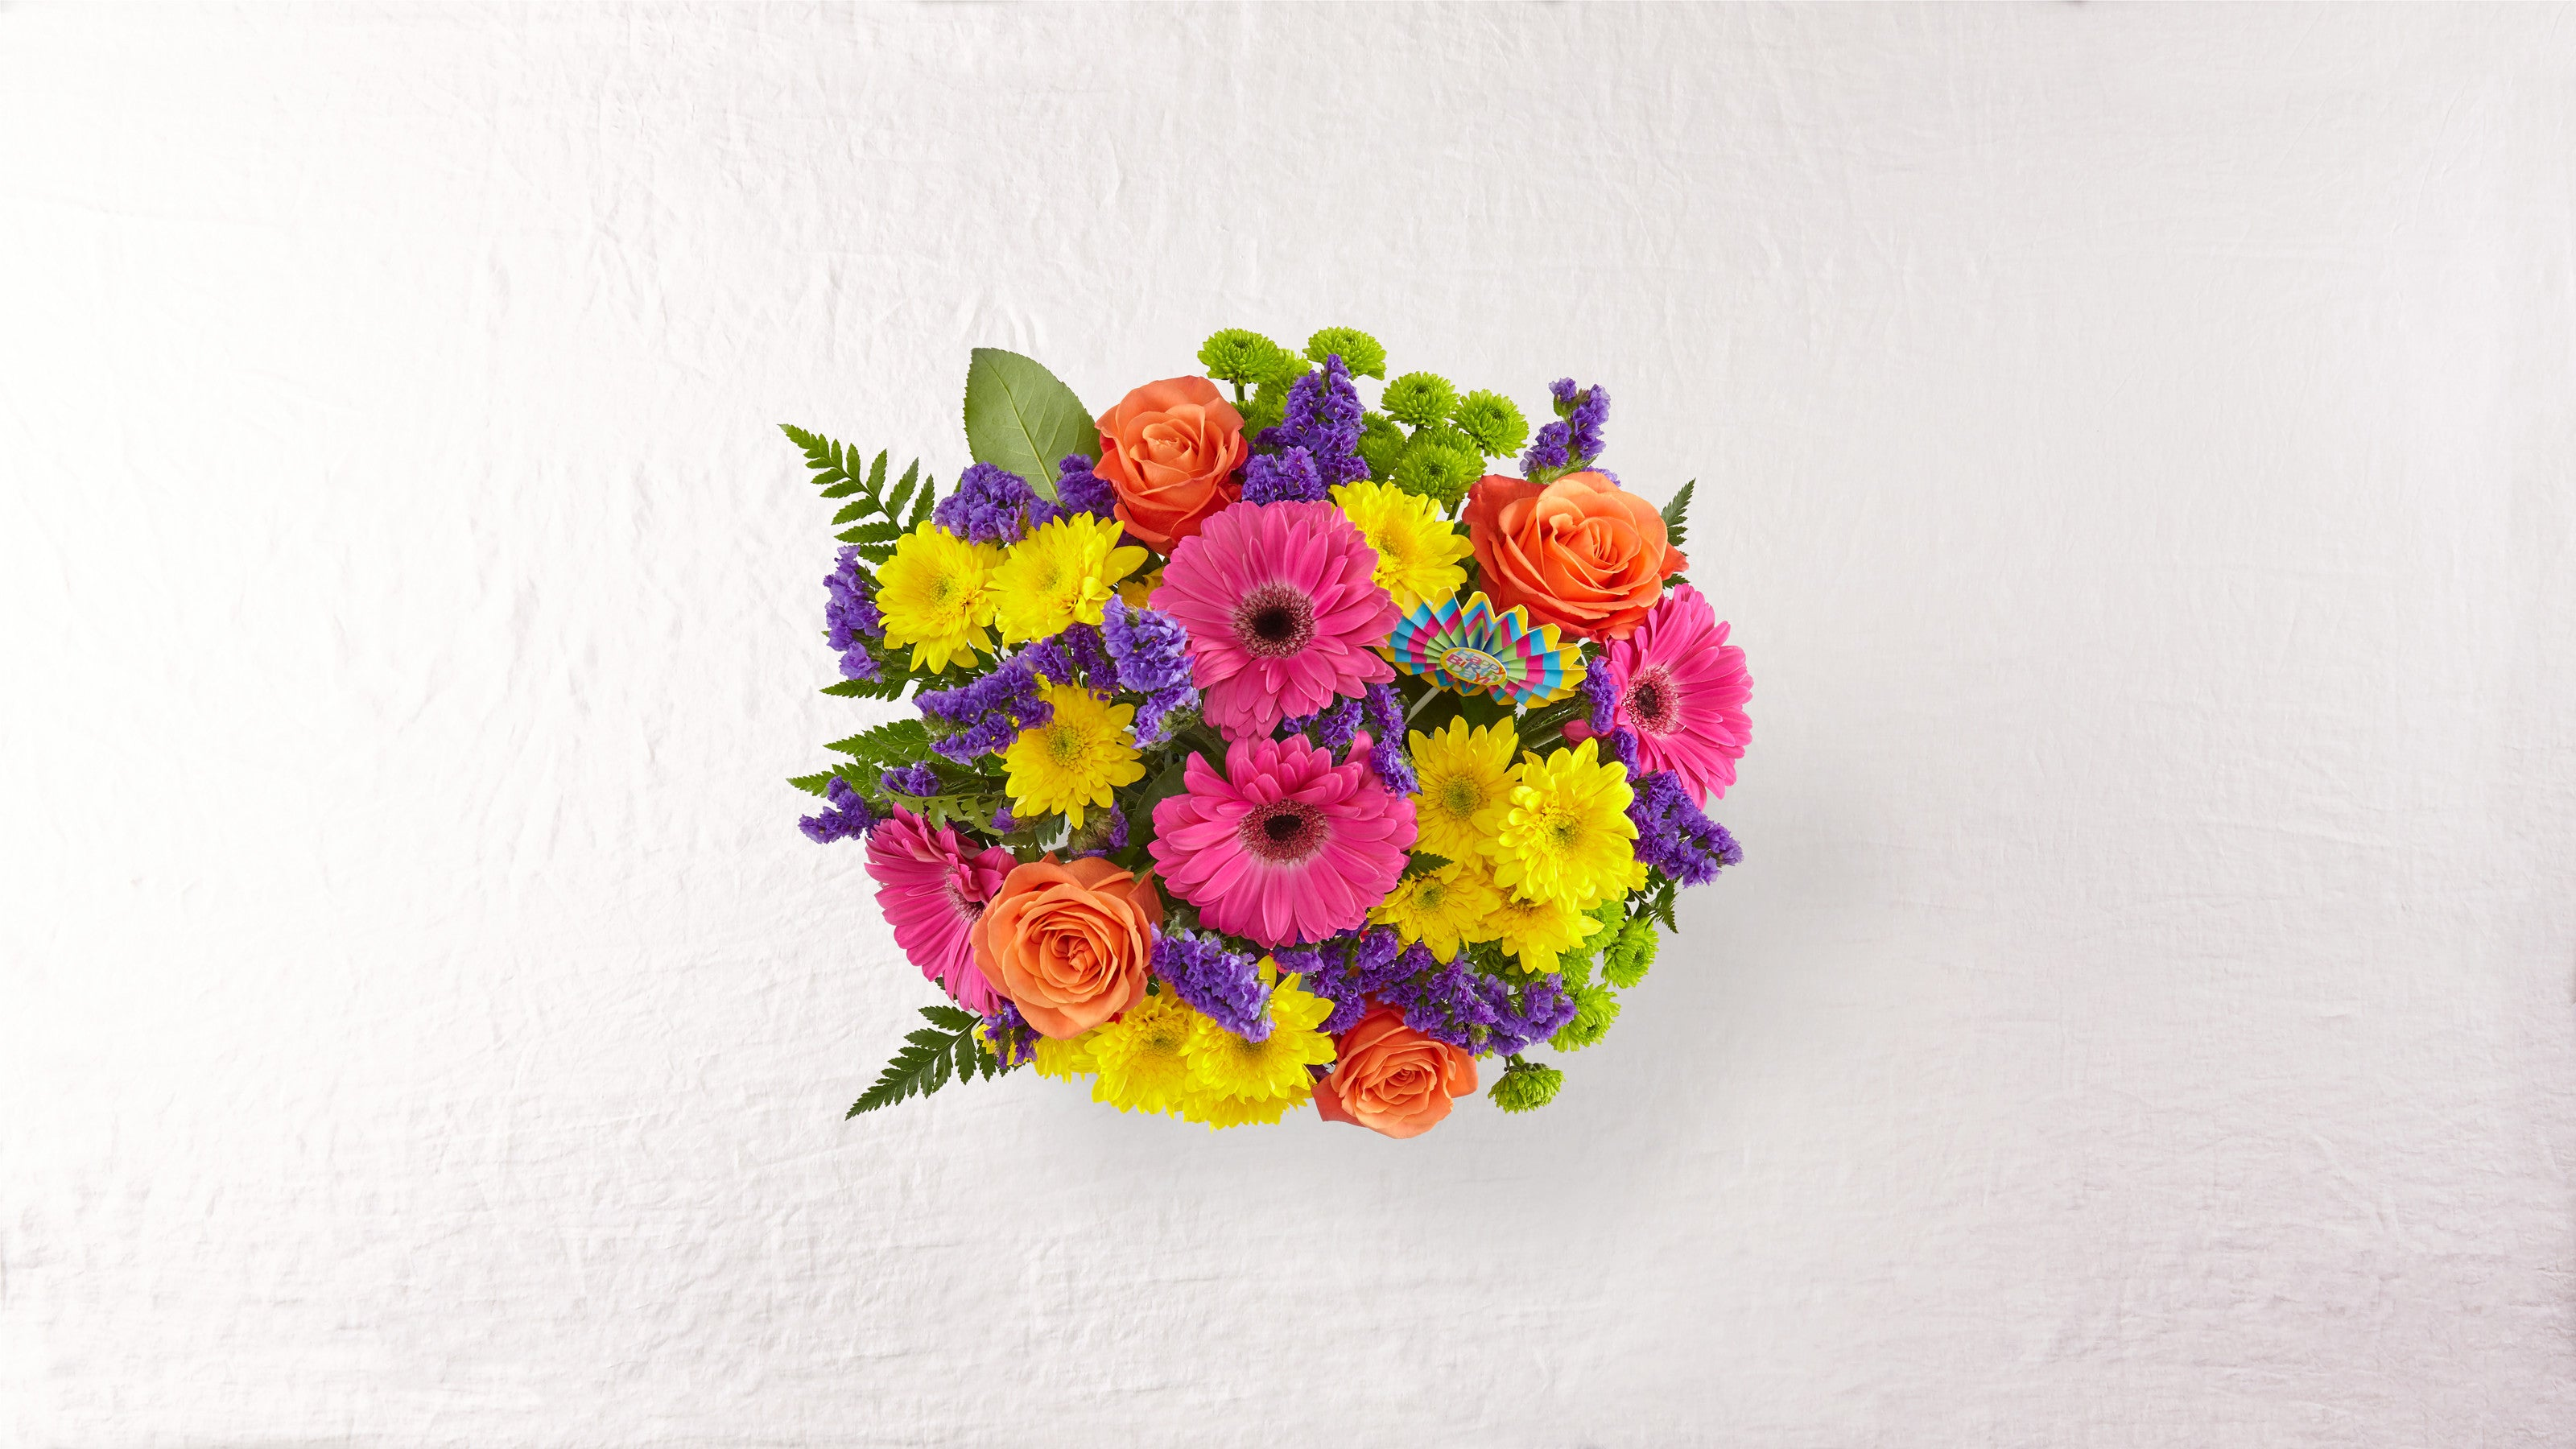 Deliver Flowers Today Flowers Delivered Today With Ftd